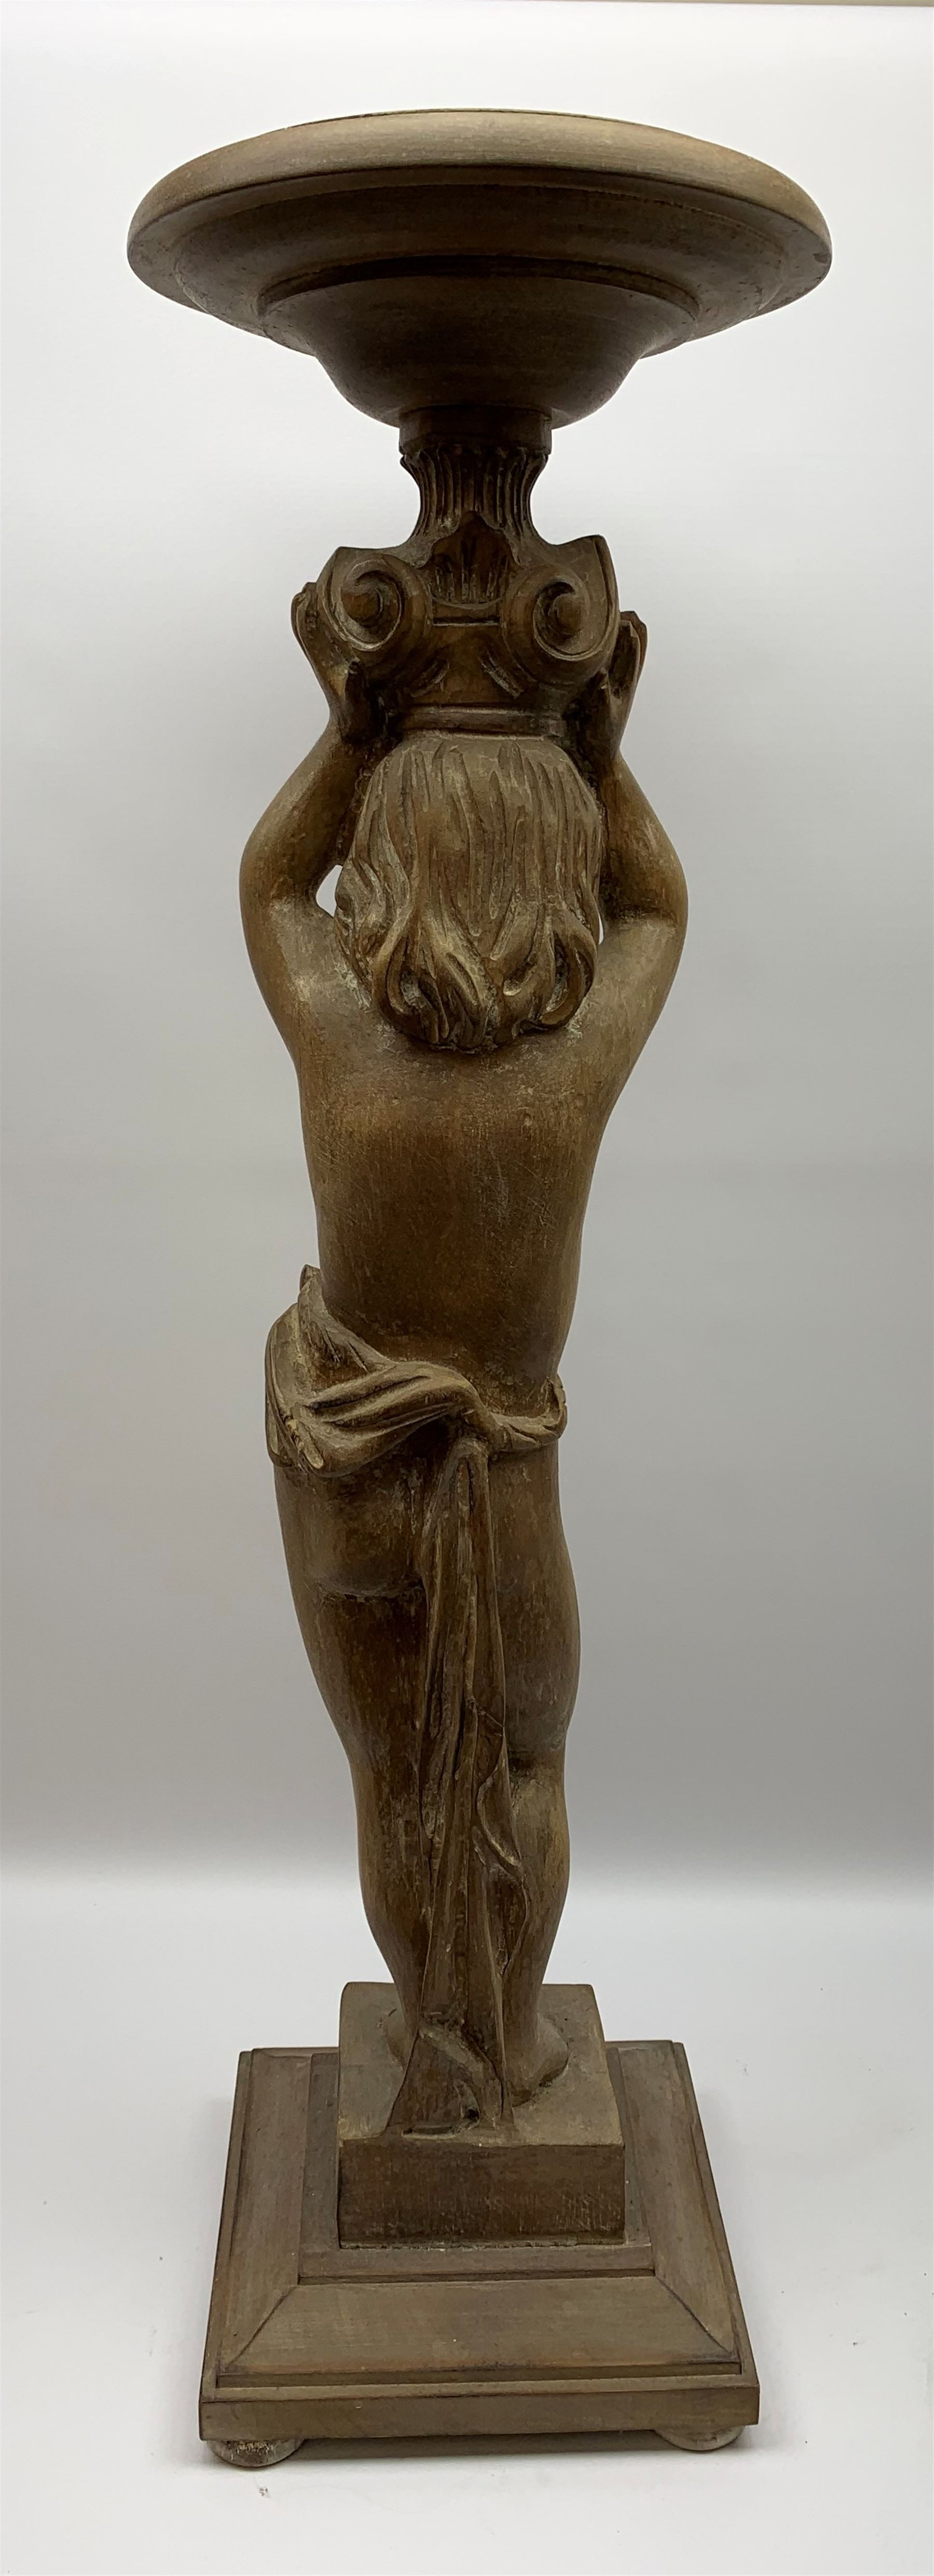 Italian carved lime wood torchère, the column modelled as a putto with arms raised supporting a - Image 9 of 9